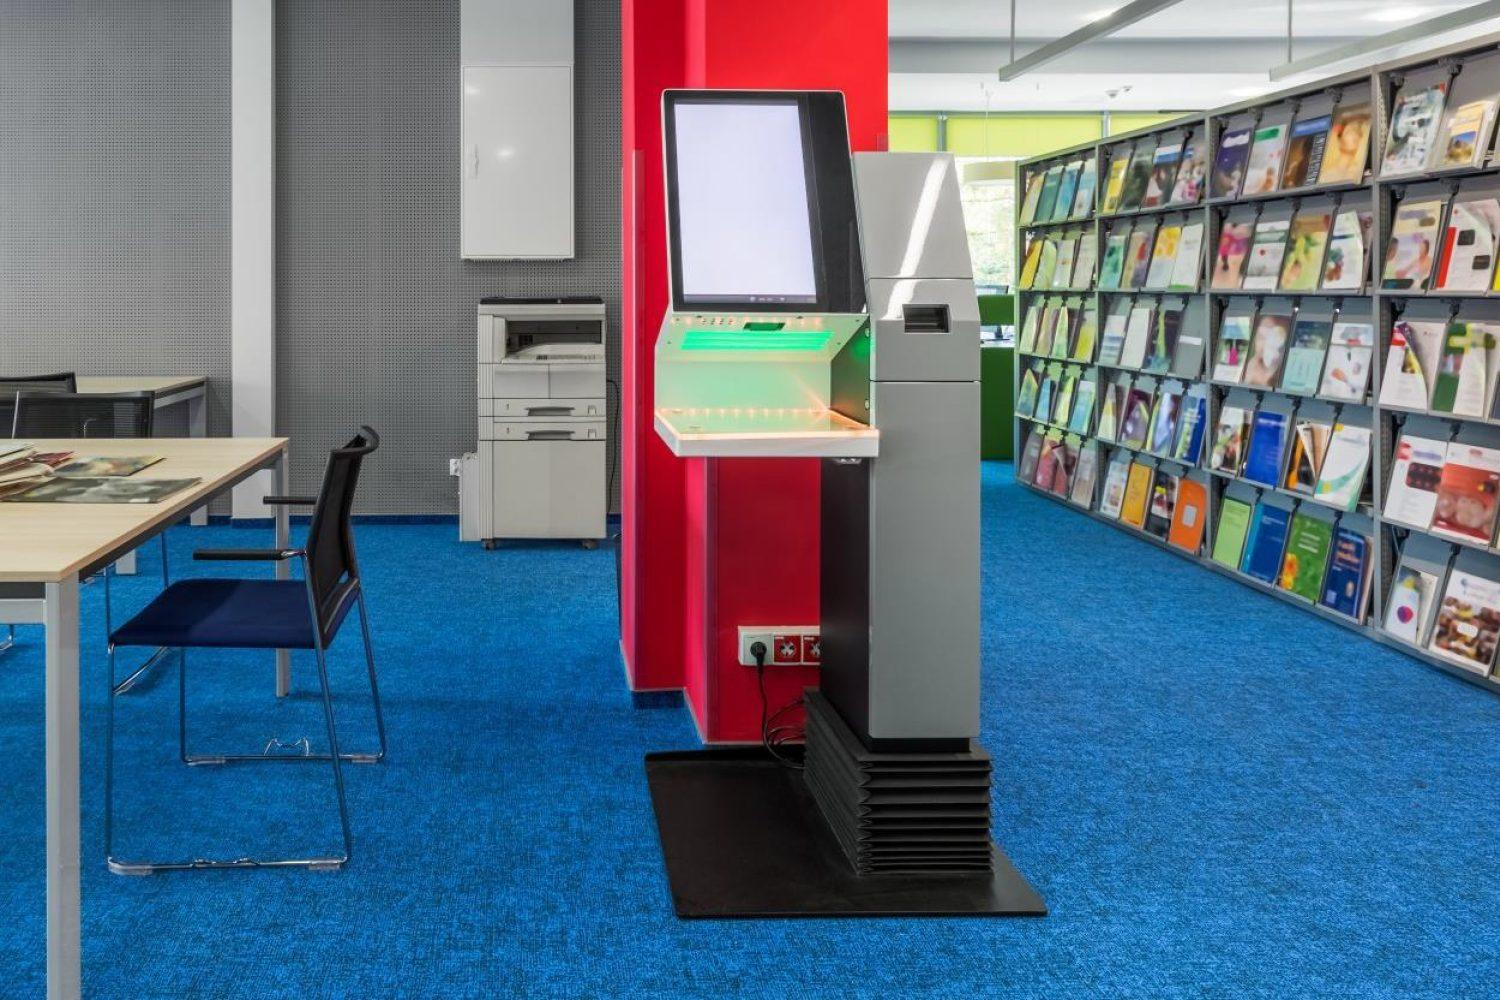 Android System Self Book Borrow and Return Kiosk for Library